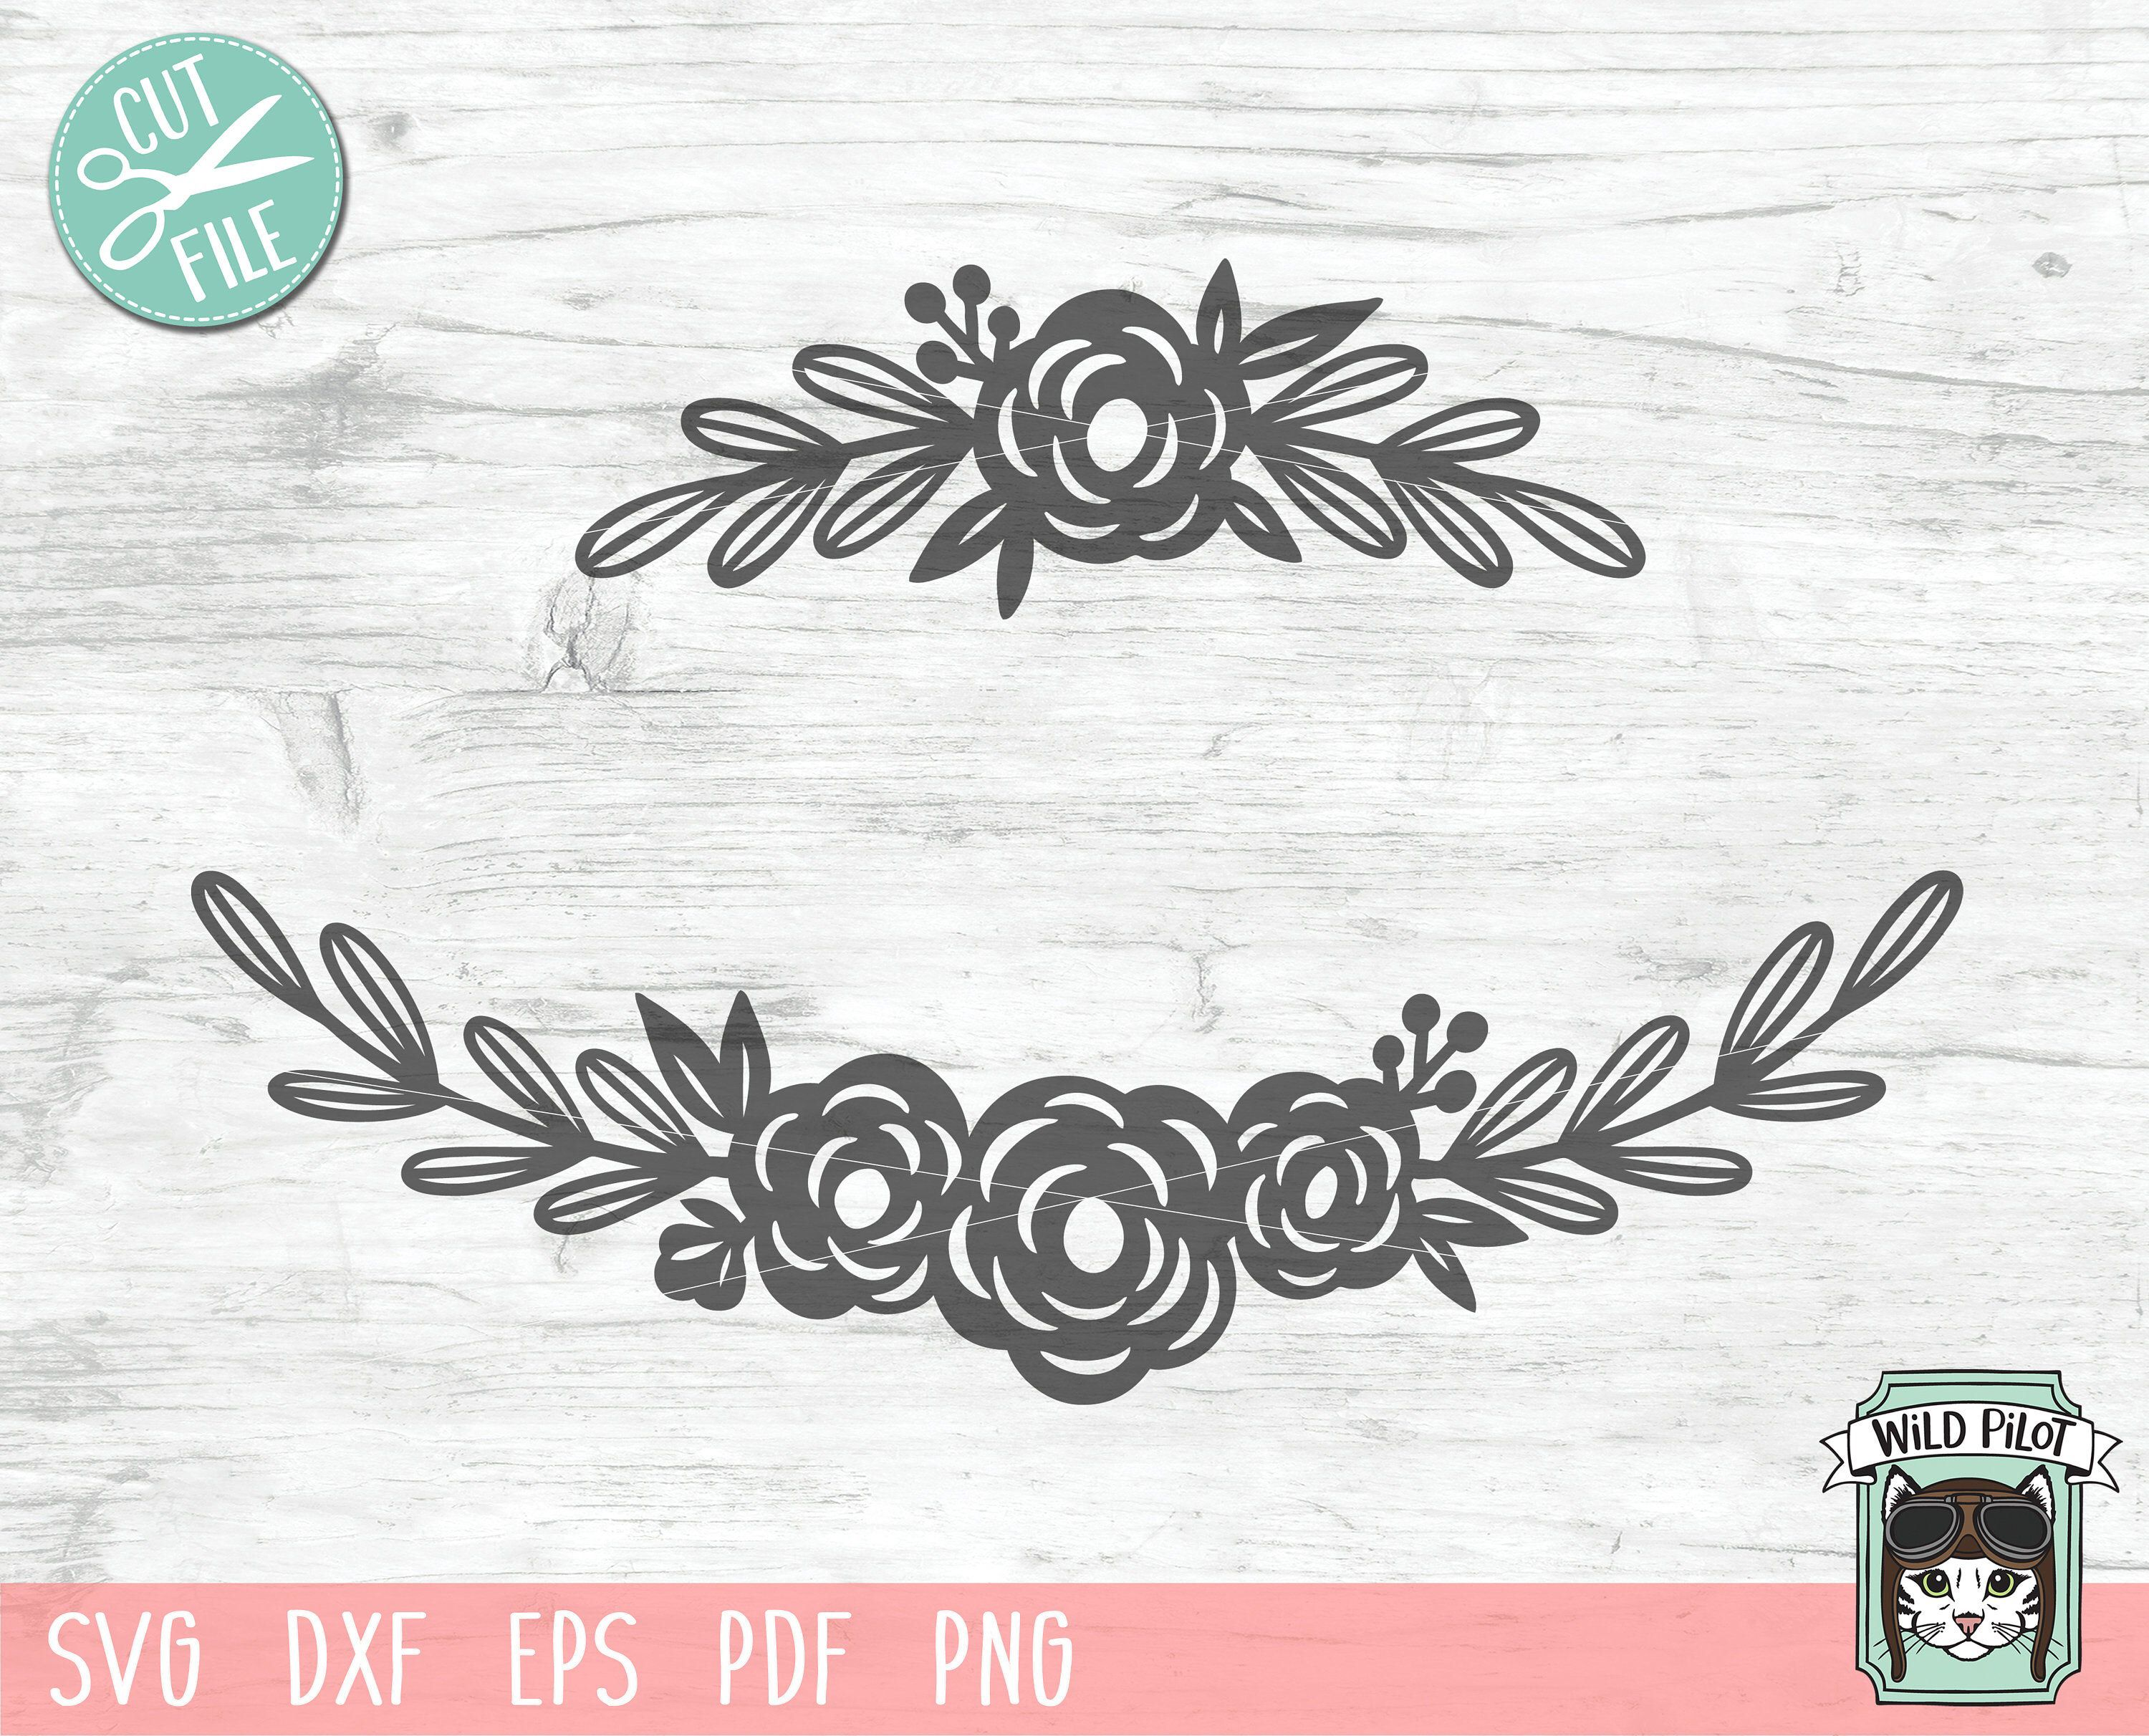 Pin on SVG Files / Vector Files